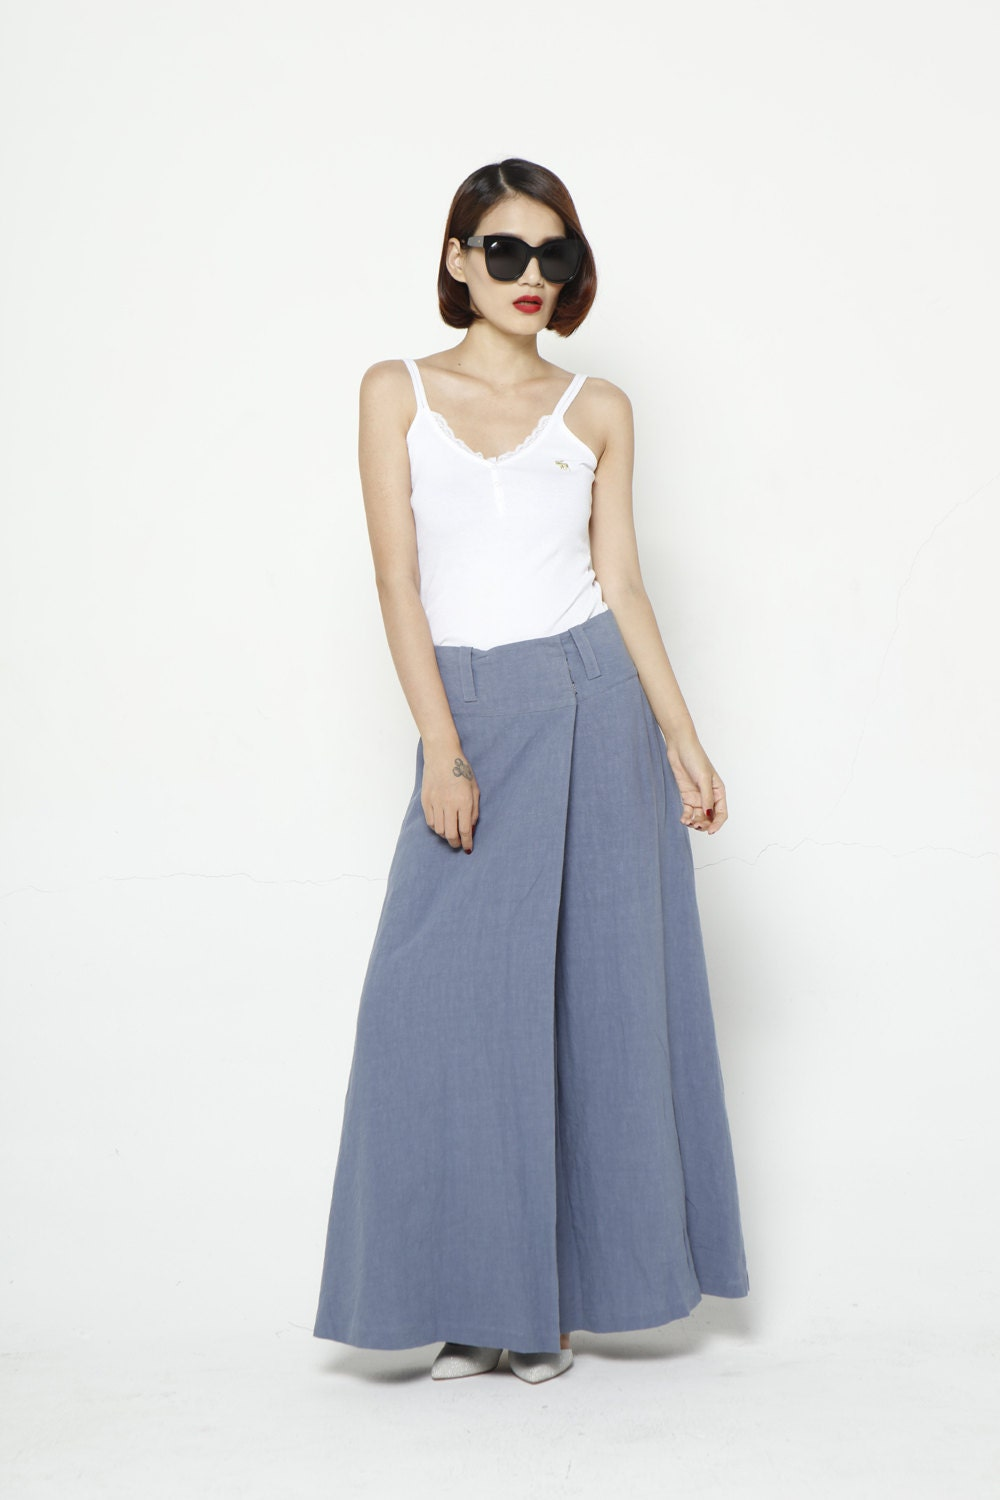 new collection maxi skirt nc572 by sophiaclothing on etsy